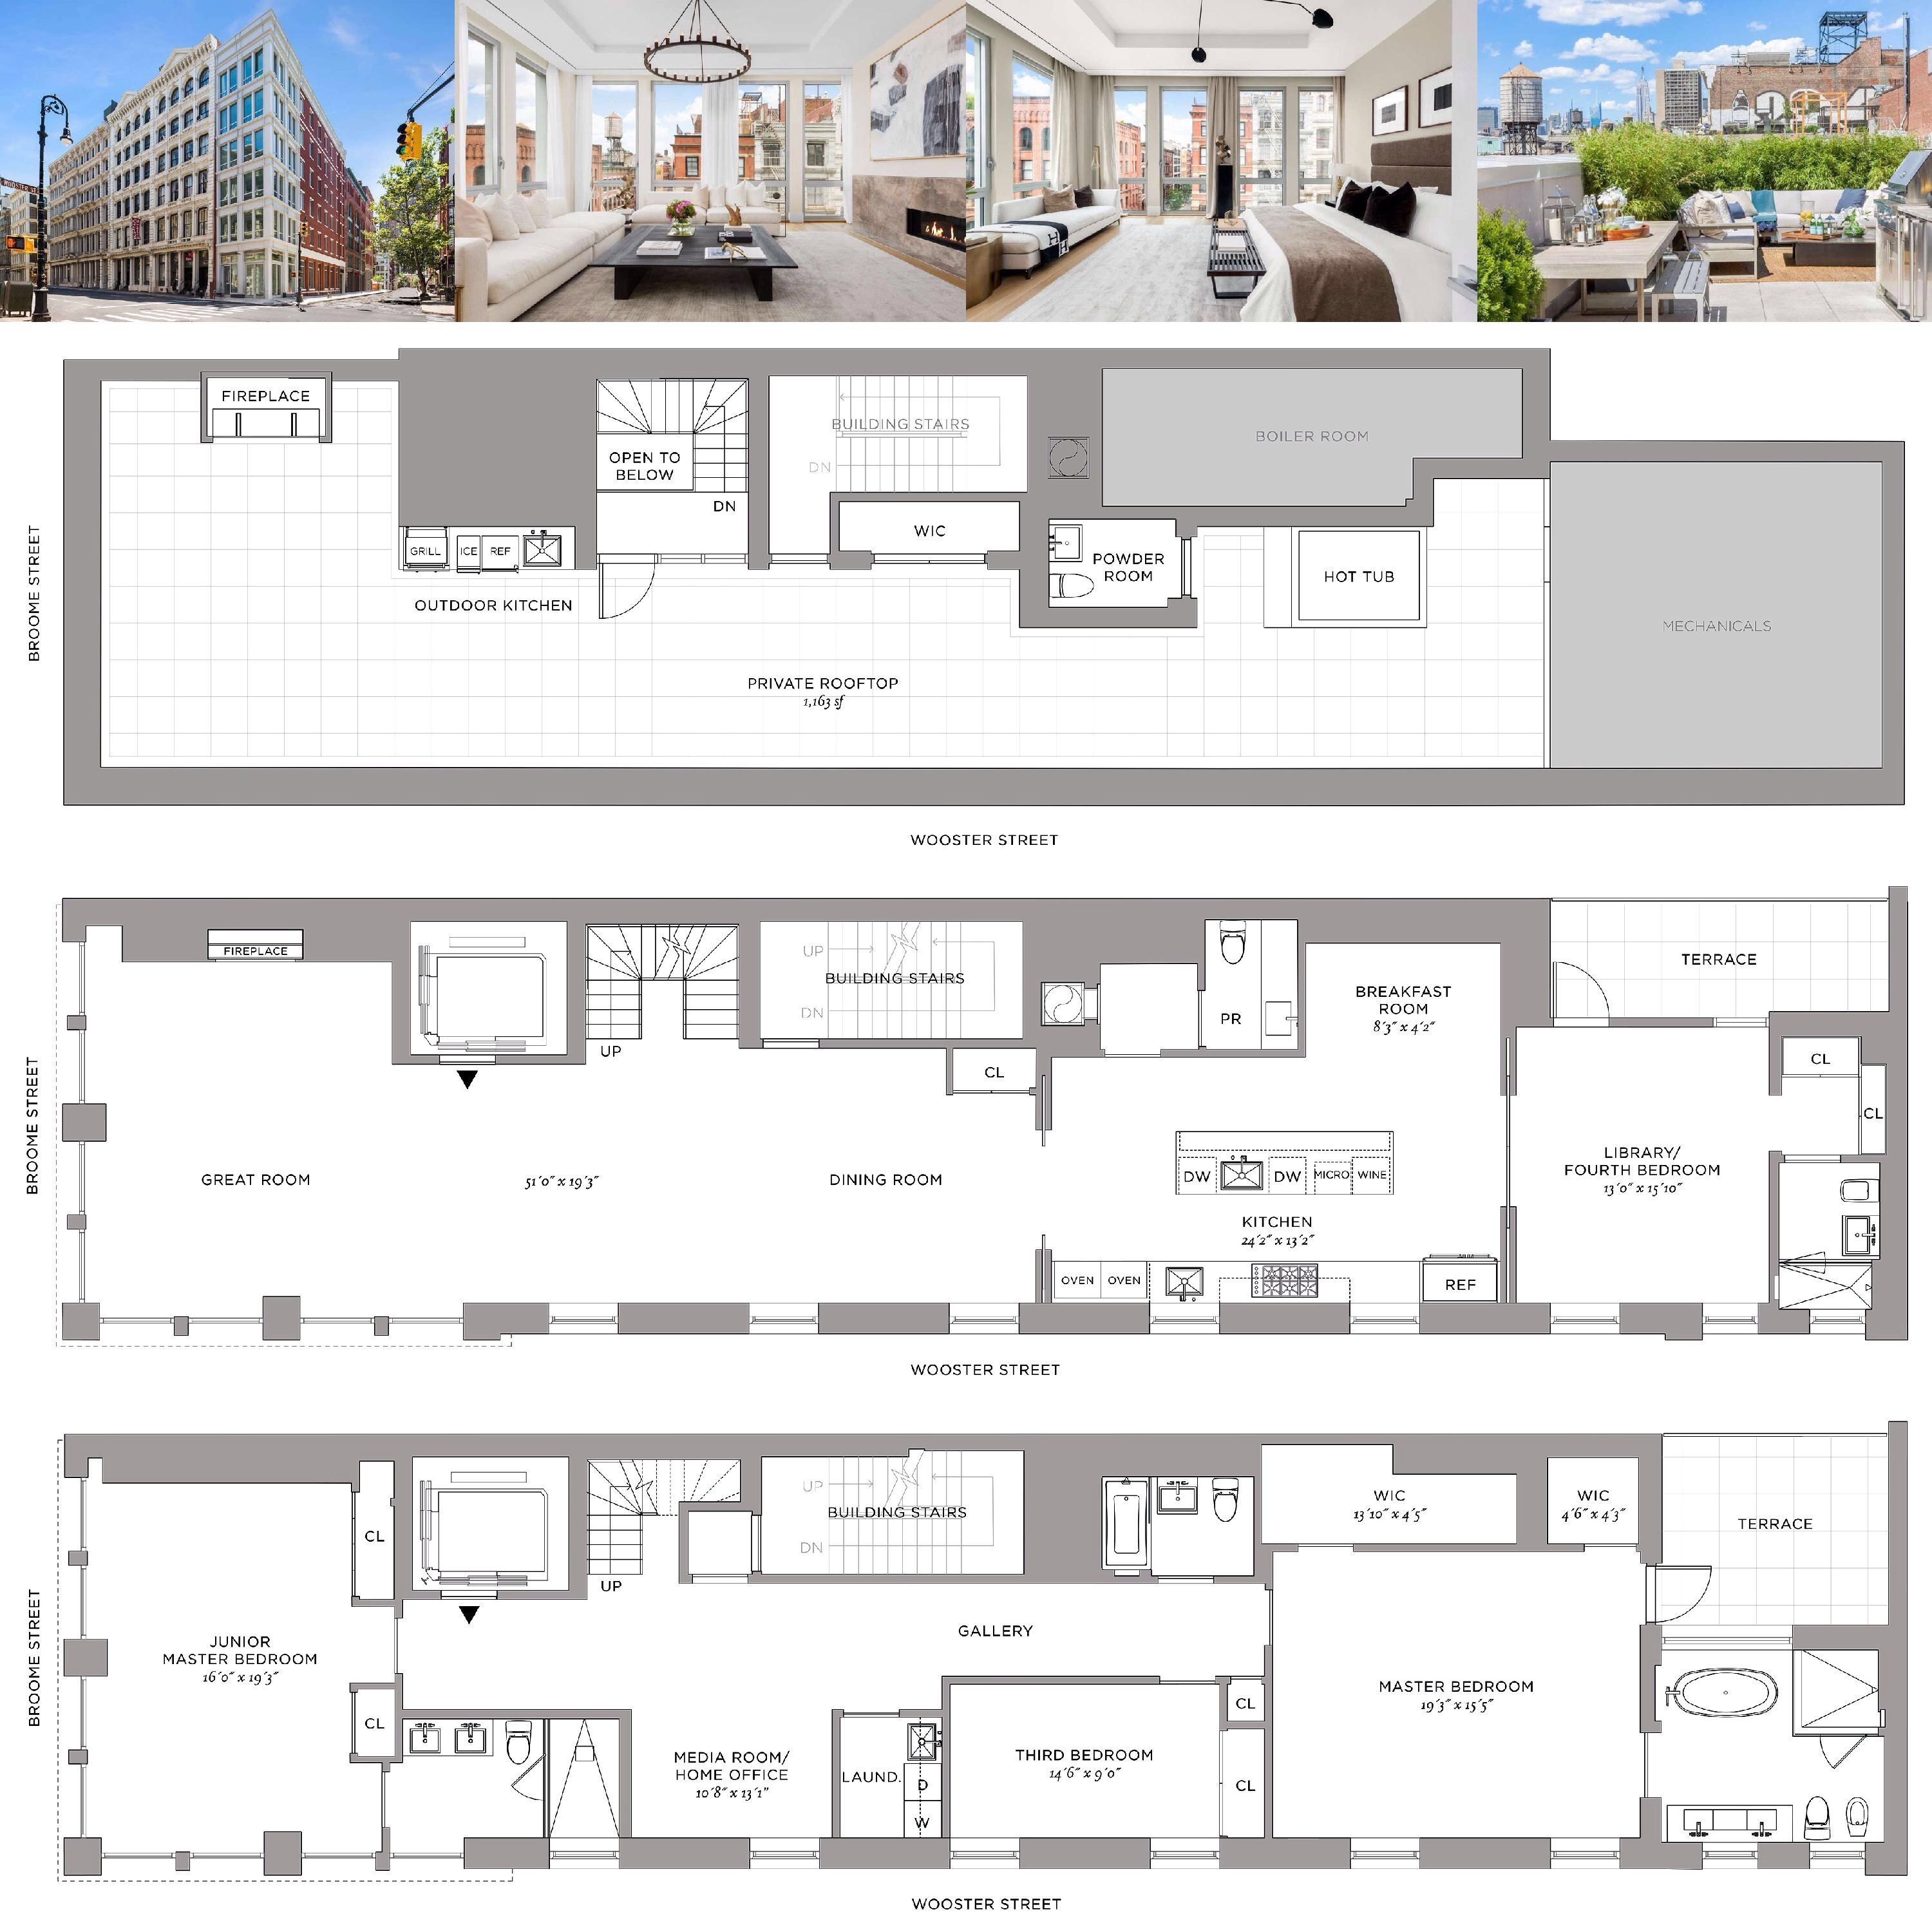 52 Wooster Soho Ny Penthouse 4bedrooms 4baths Interior 4 270 Sqft Terrace 1 368 Sqft Loft Plan Interior Decorating Dining Room Townhouse Apartments